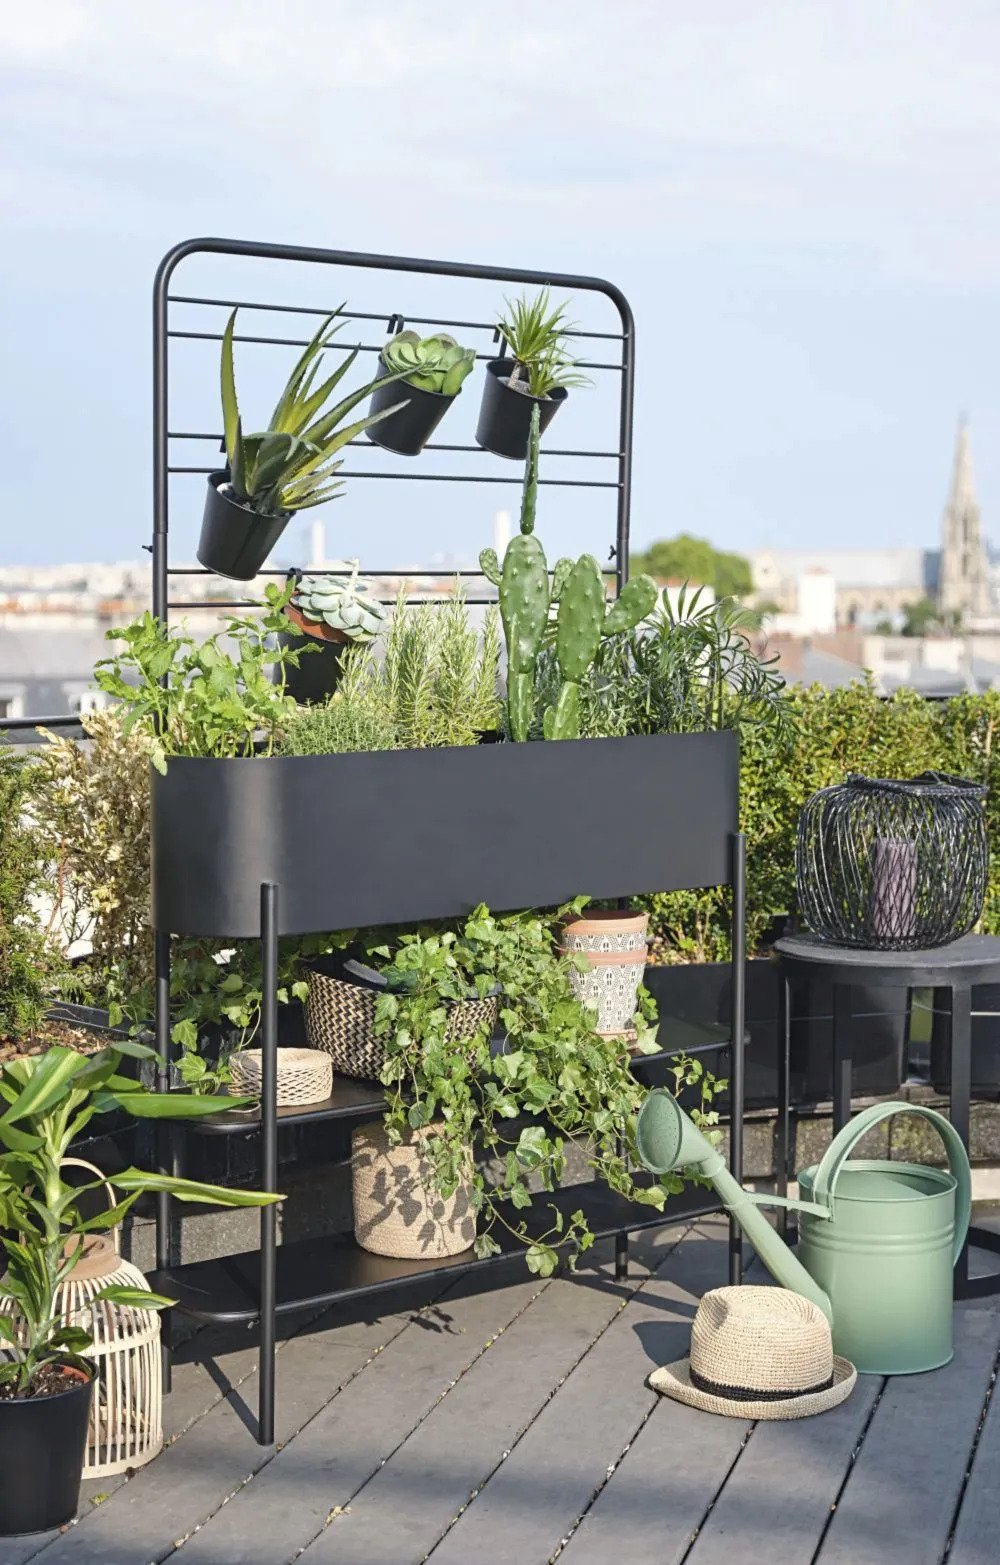 07 - A standing vegetable garden with a polished allure on the terrace